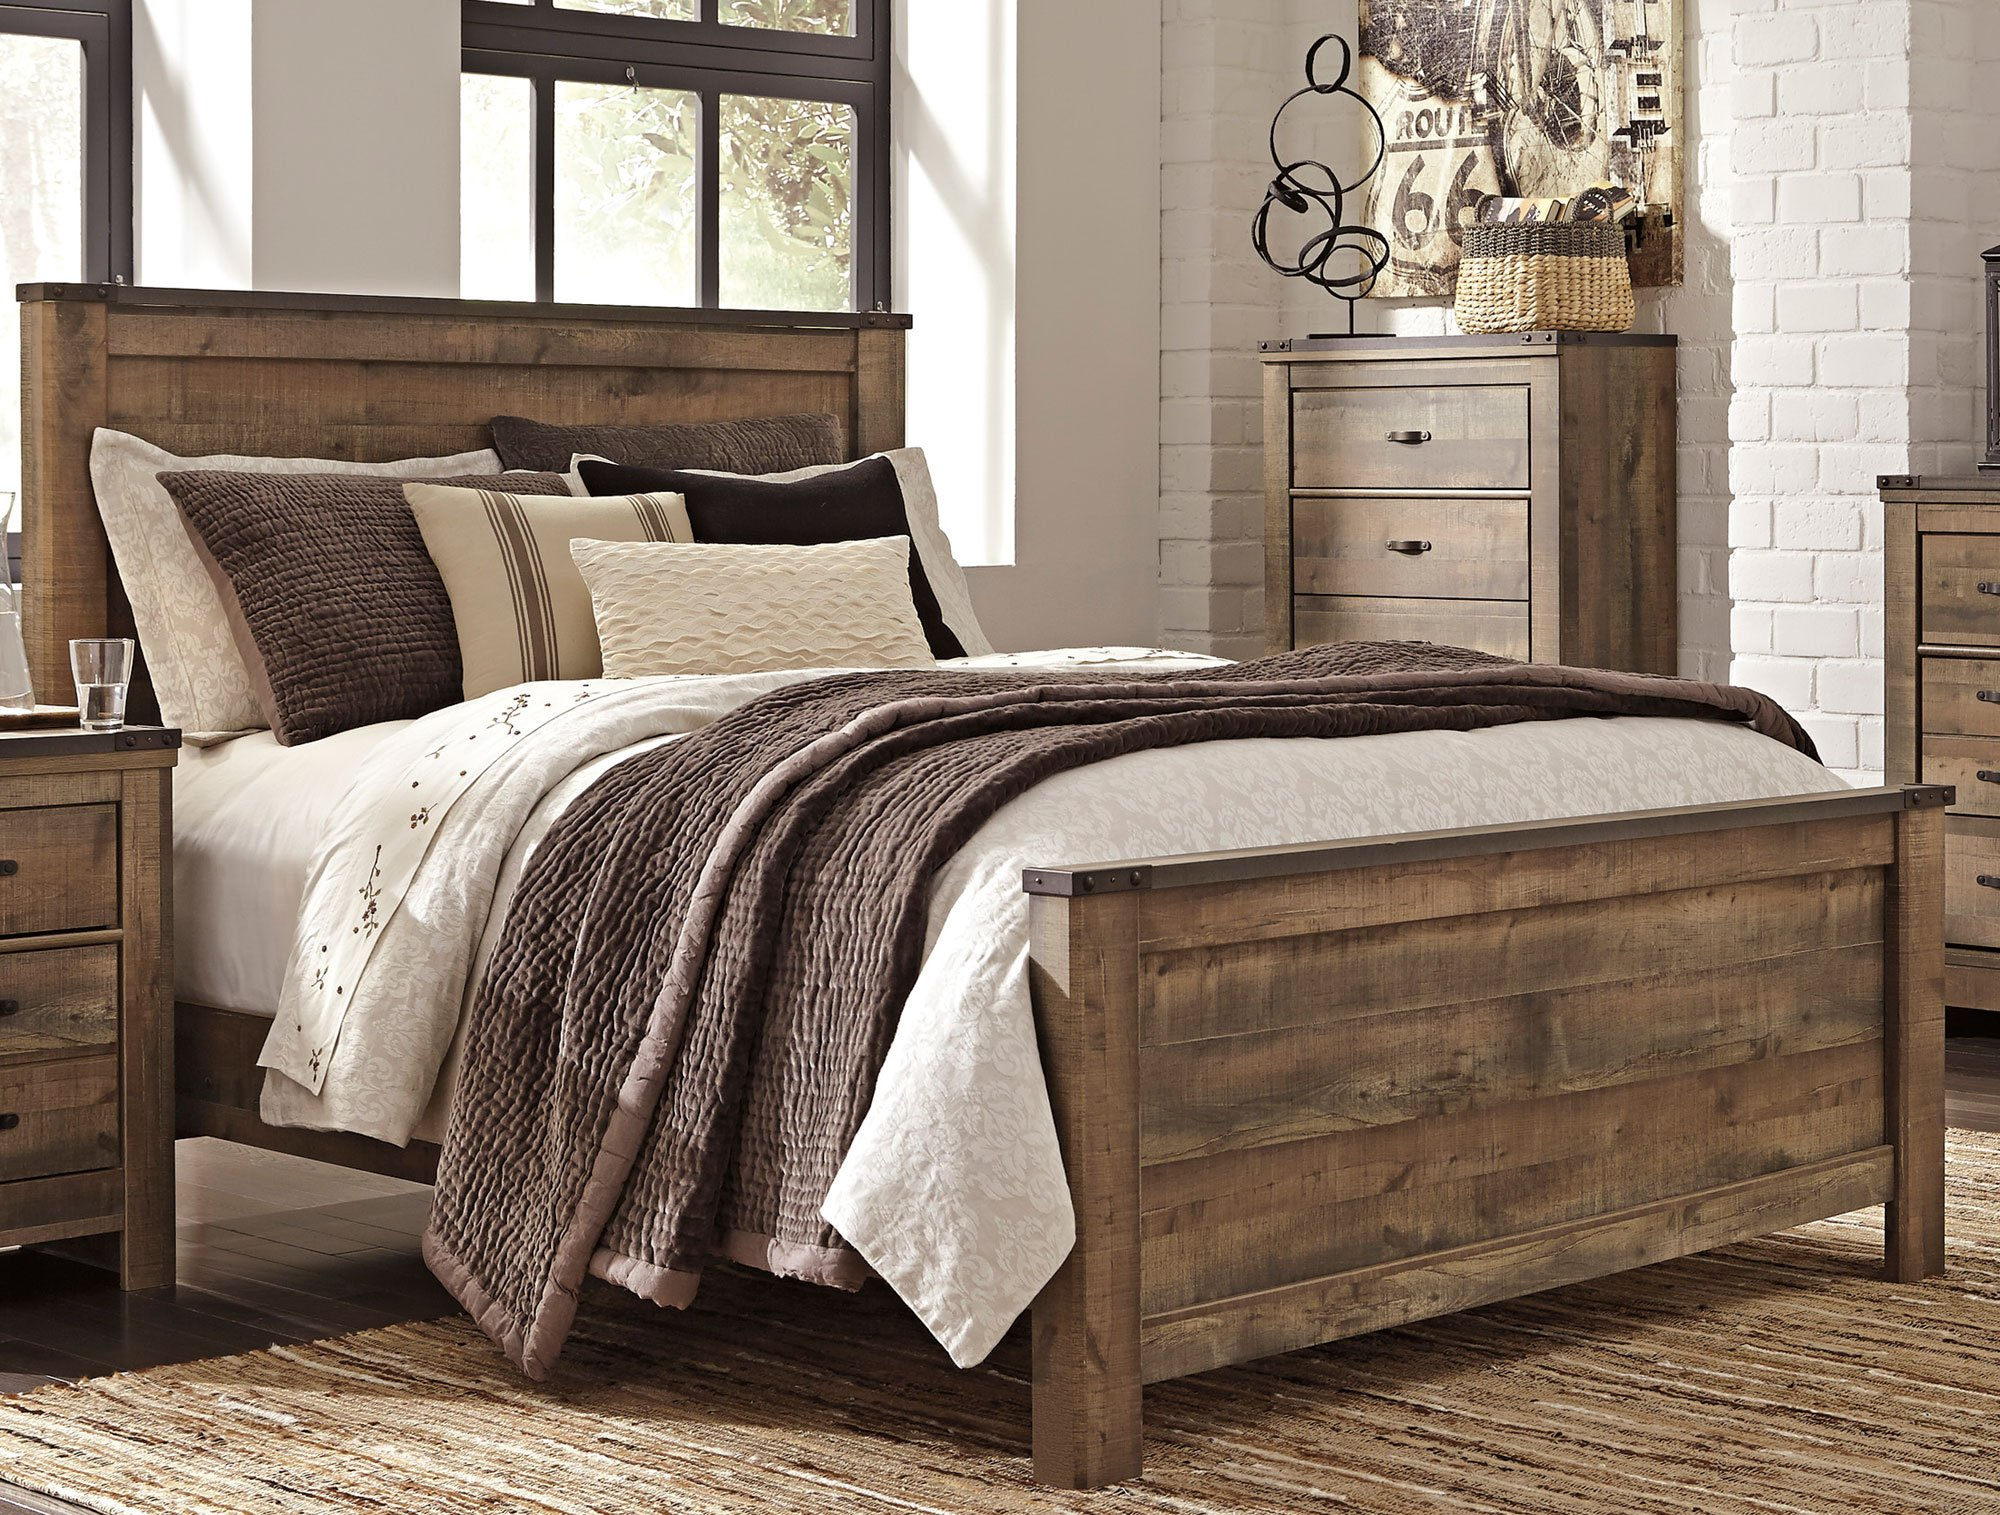 rustic king bedroom set rustic casual contemporary 6 king bedroom set 17017